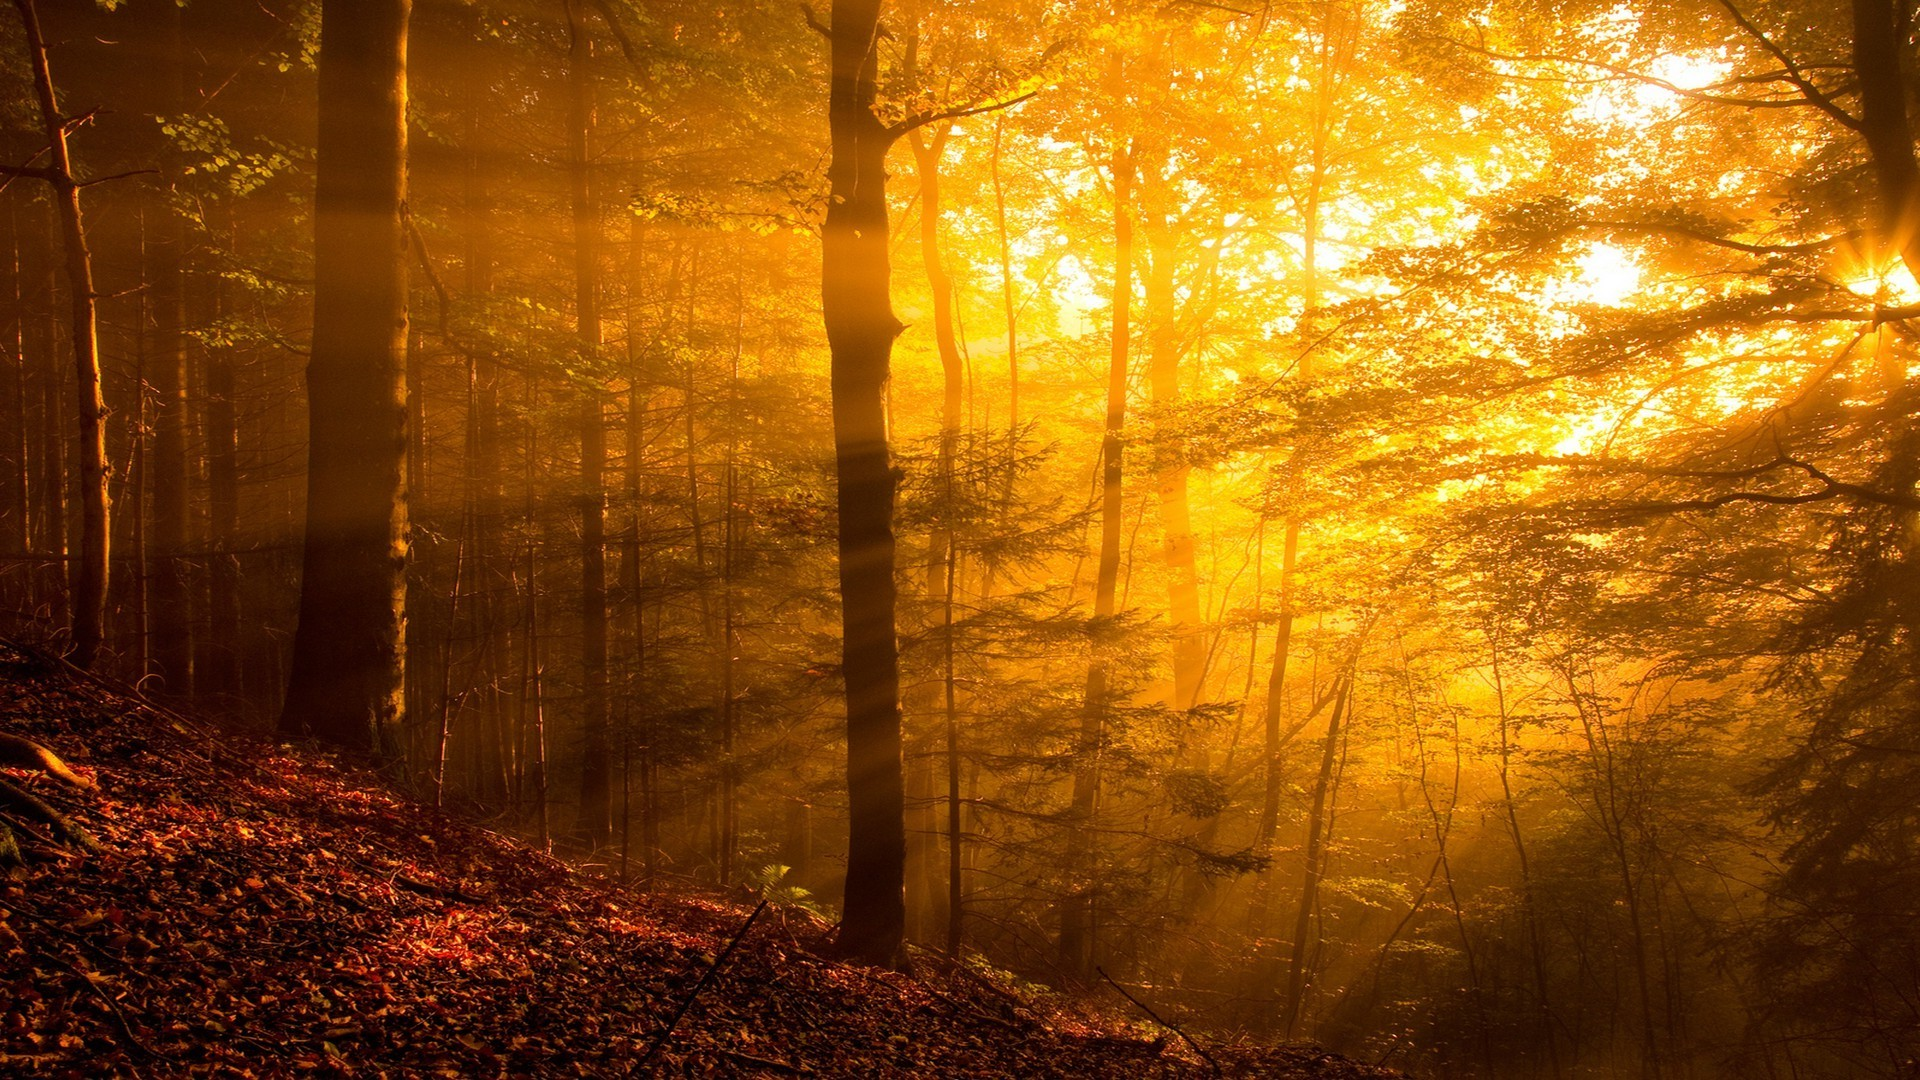 Fall Leaves Hd Desktop Wallpaper Nature Trees Forest Sun Rays Leaves Branch Plants